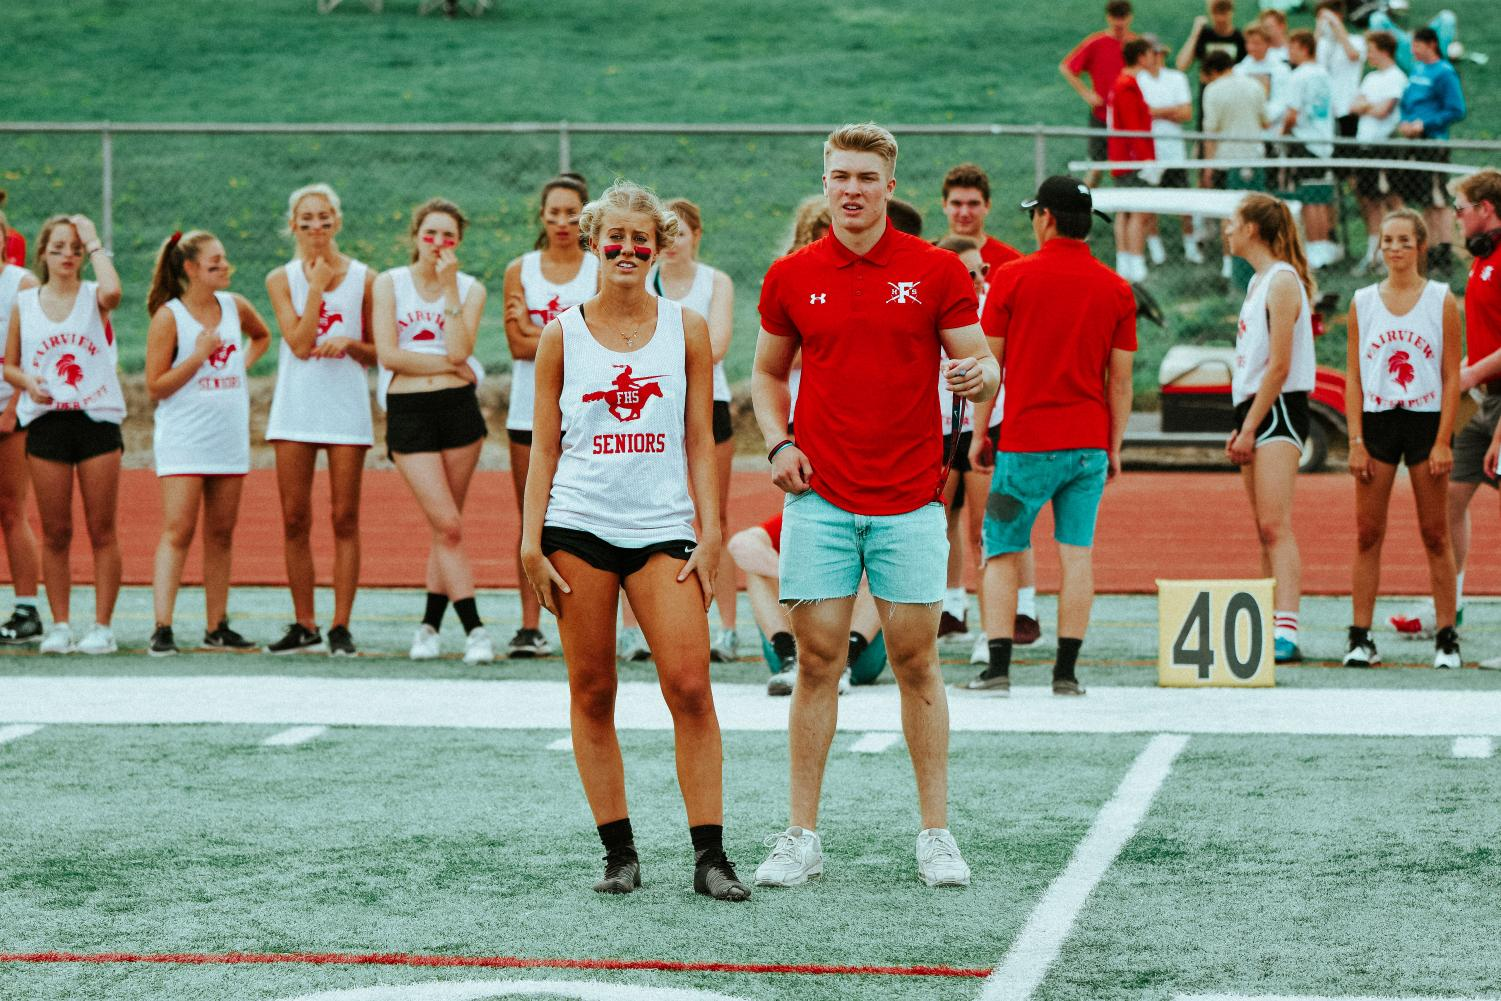 Seniors Matt Greenwald and Emma Carter look out to the field during a timeout in the first half of the powderpuff football game.